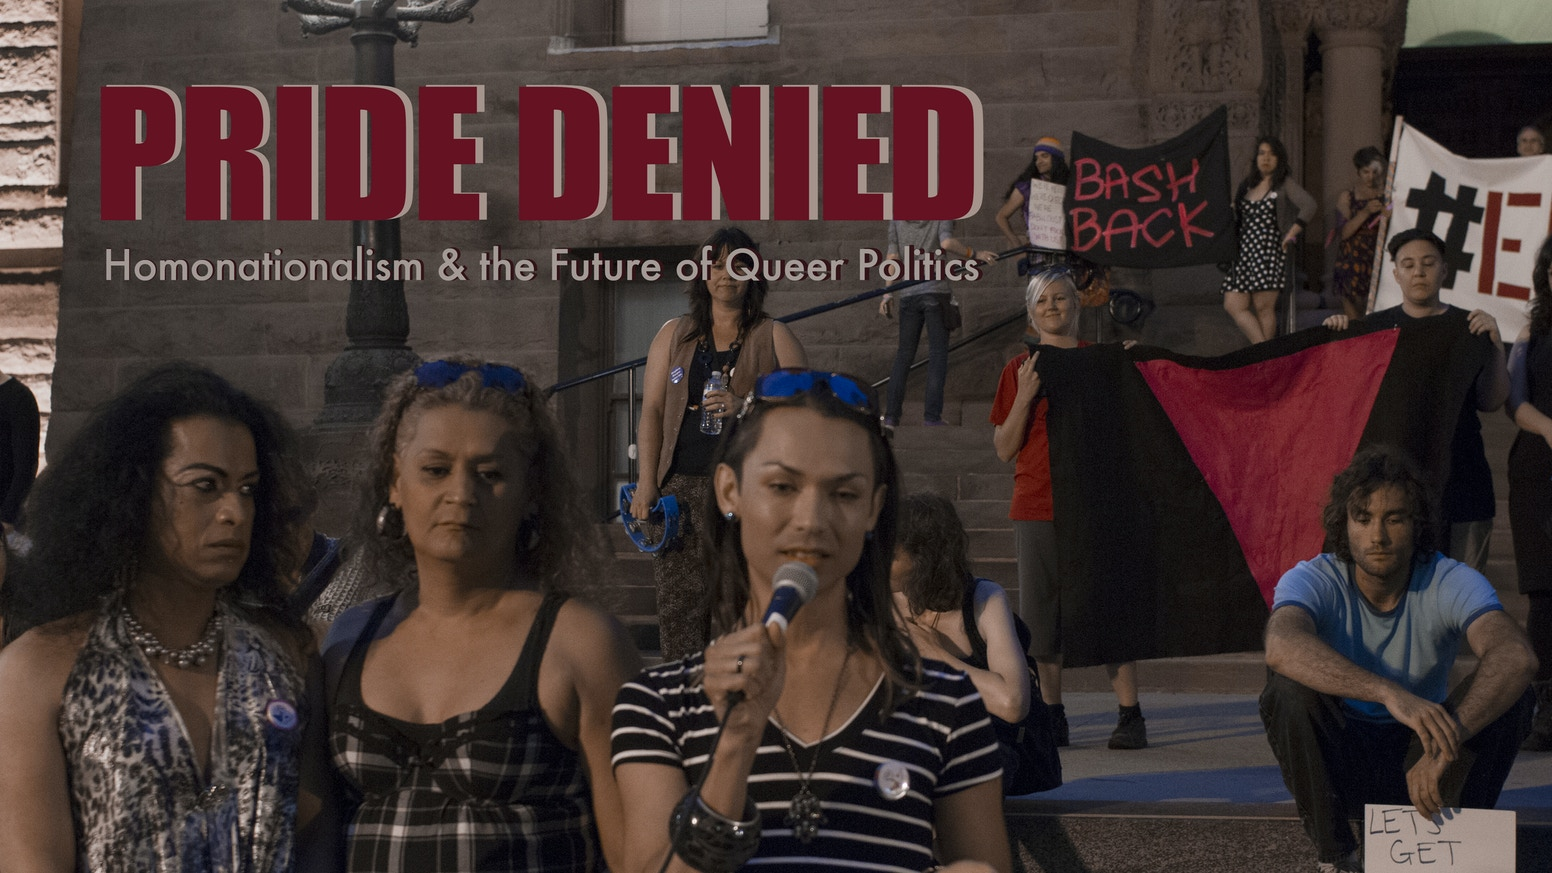 Activists and artists resist assimilation and fight the ongoing oppression of queer, trans, lesbian, gay, and bisexual people.